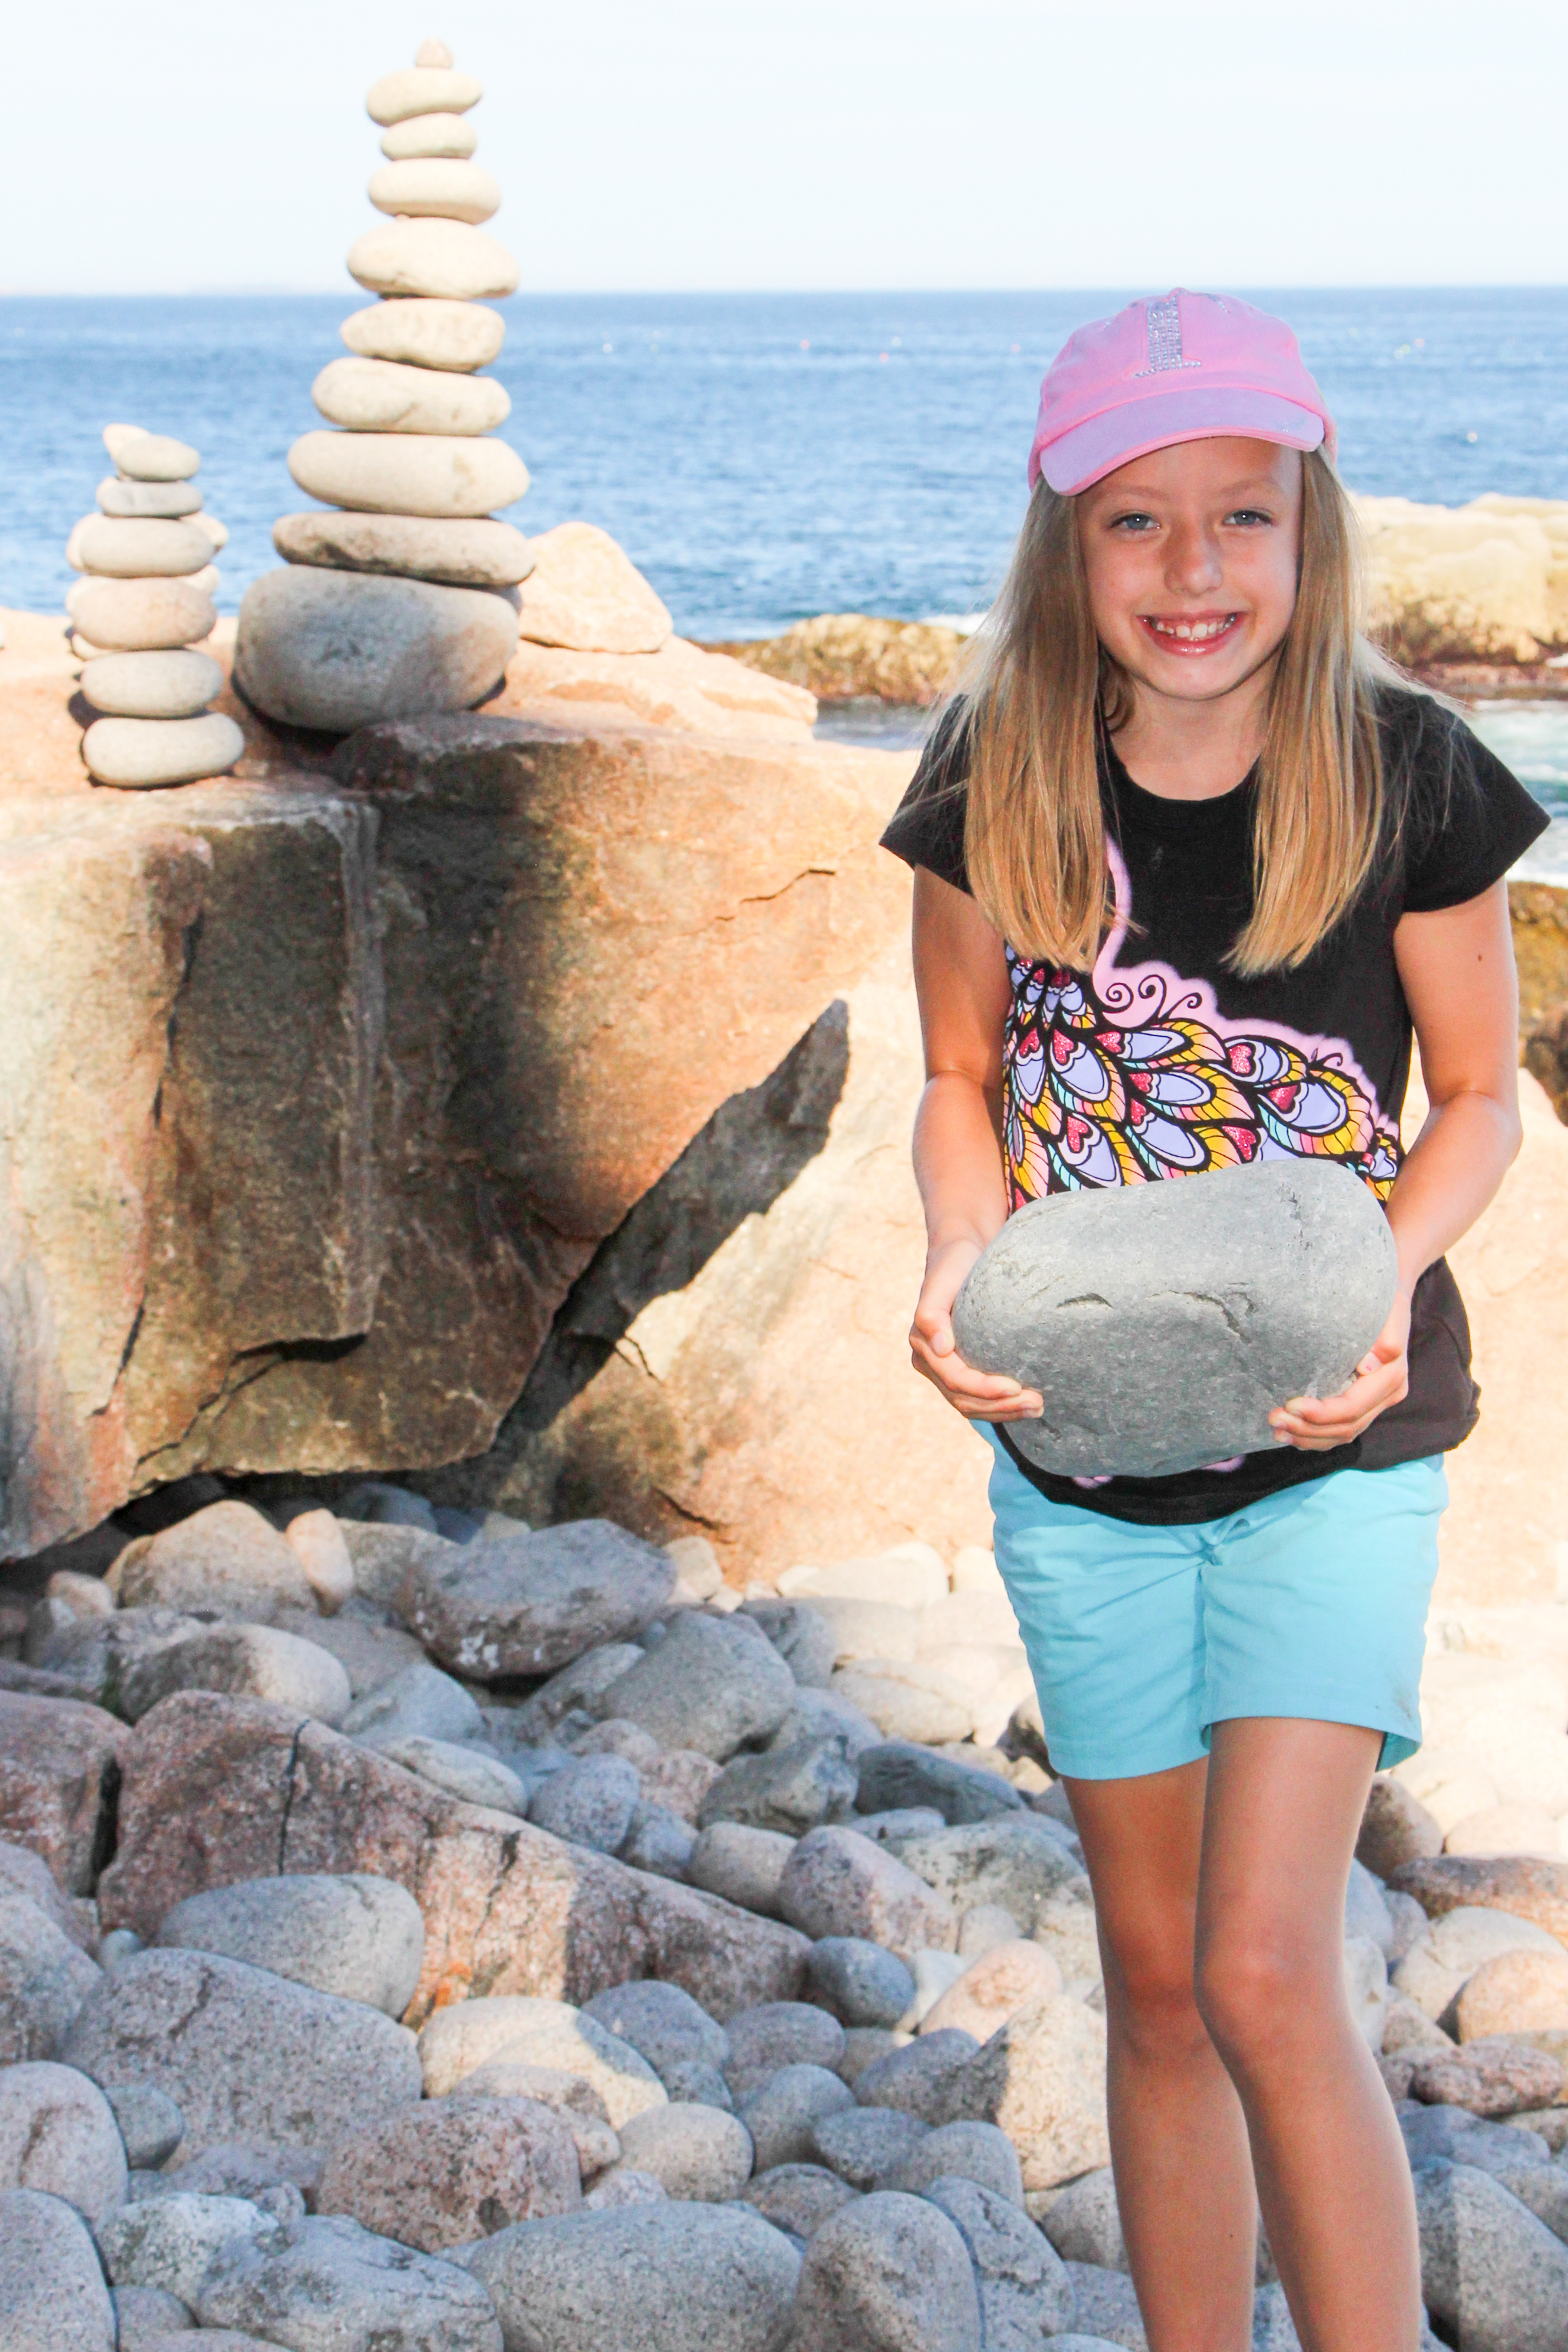 Cairns are used as trail markers along several of the hikes in the park and so they have popped up even along the beach and other places in the park. There were several standing on Boulder Beach when we down to it, and Petunia built a small one herself.